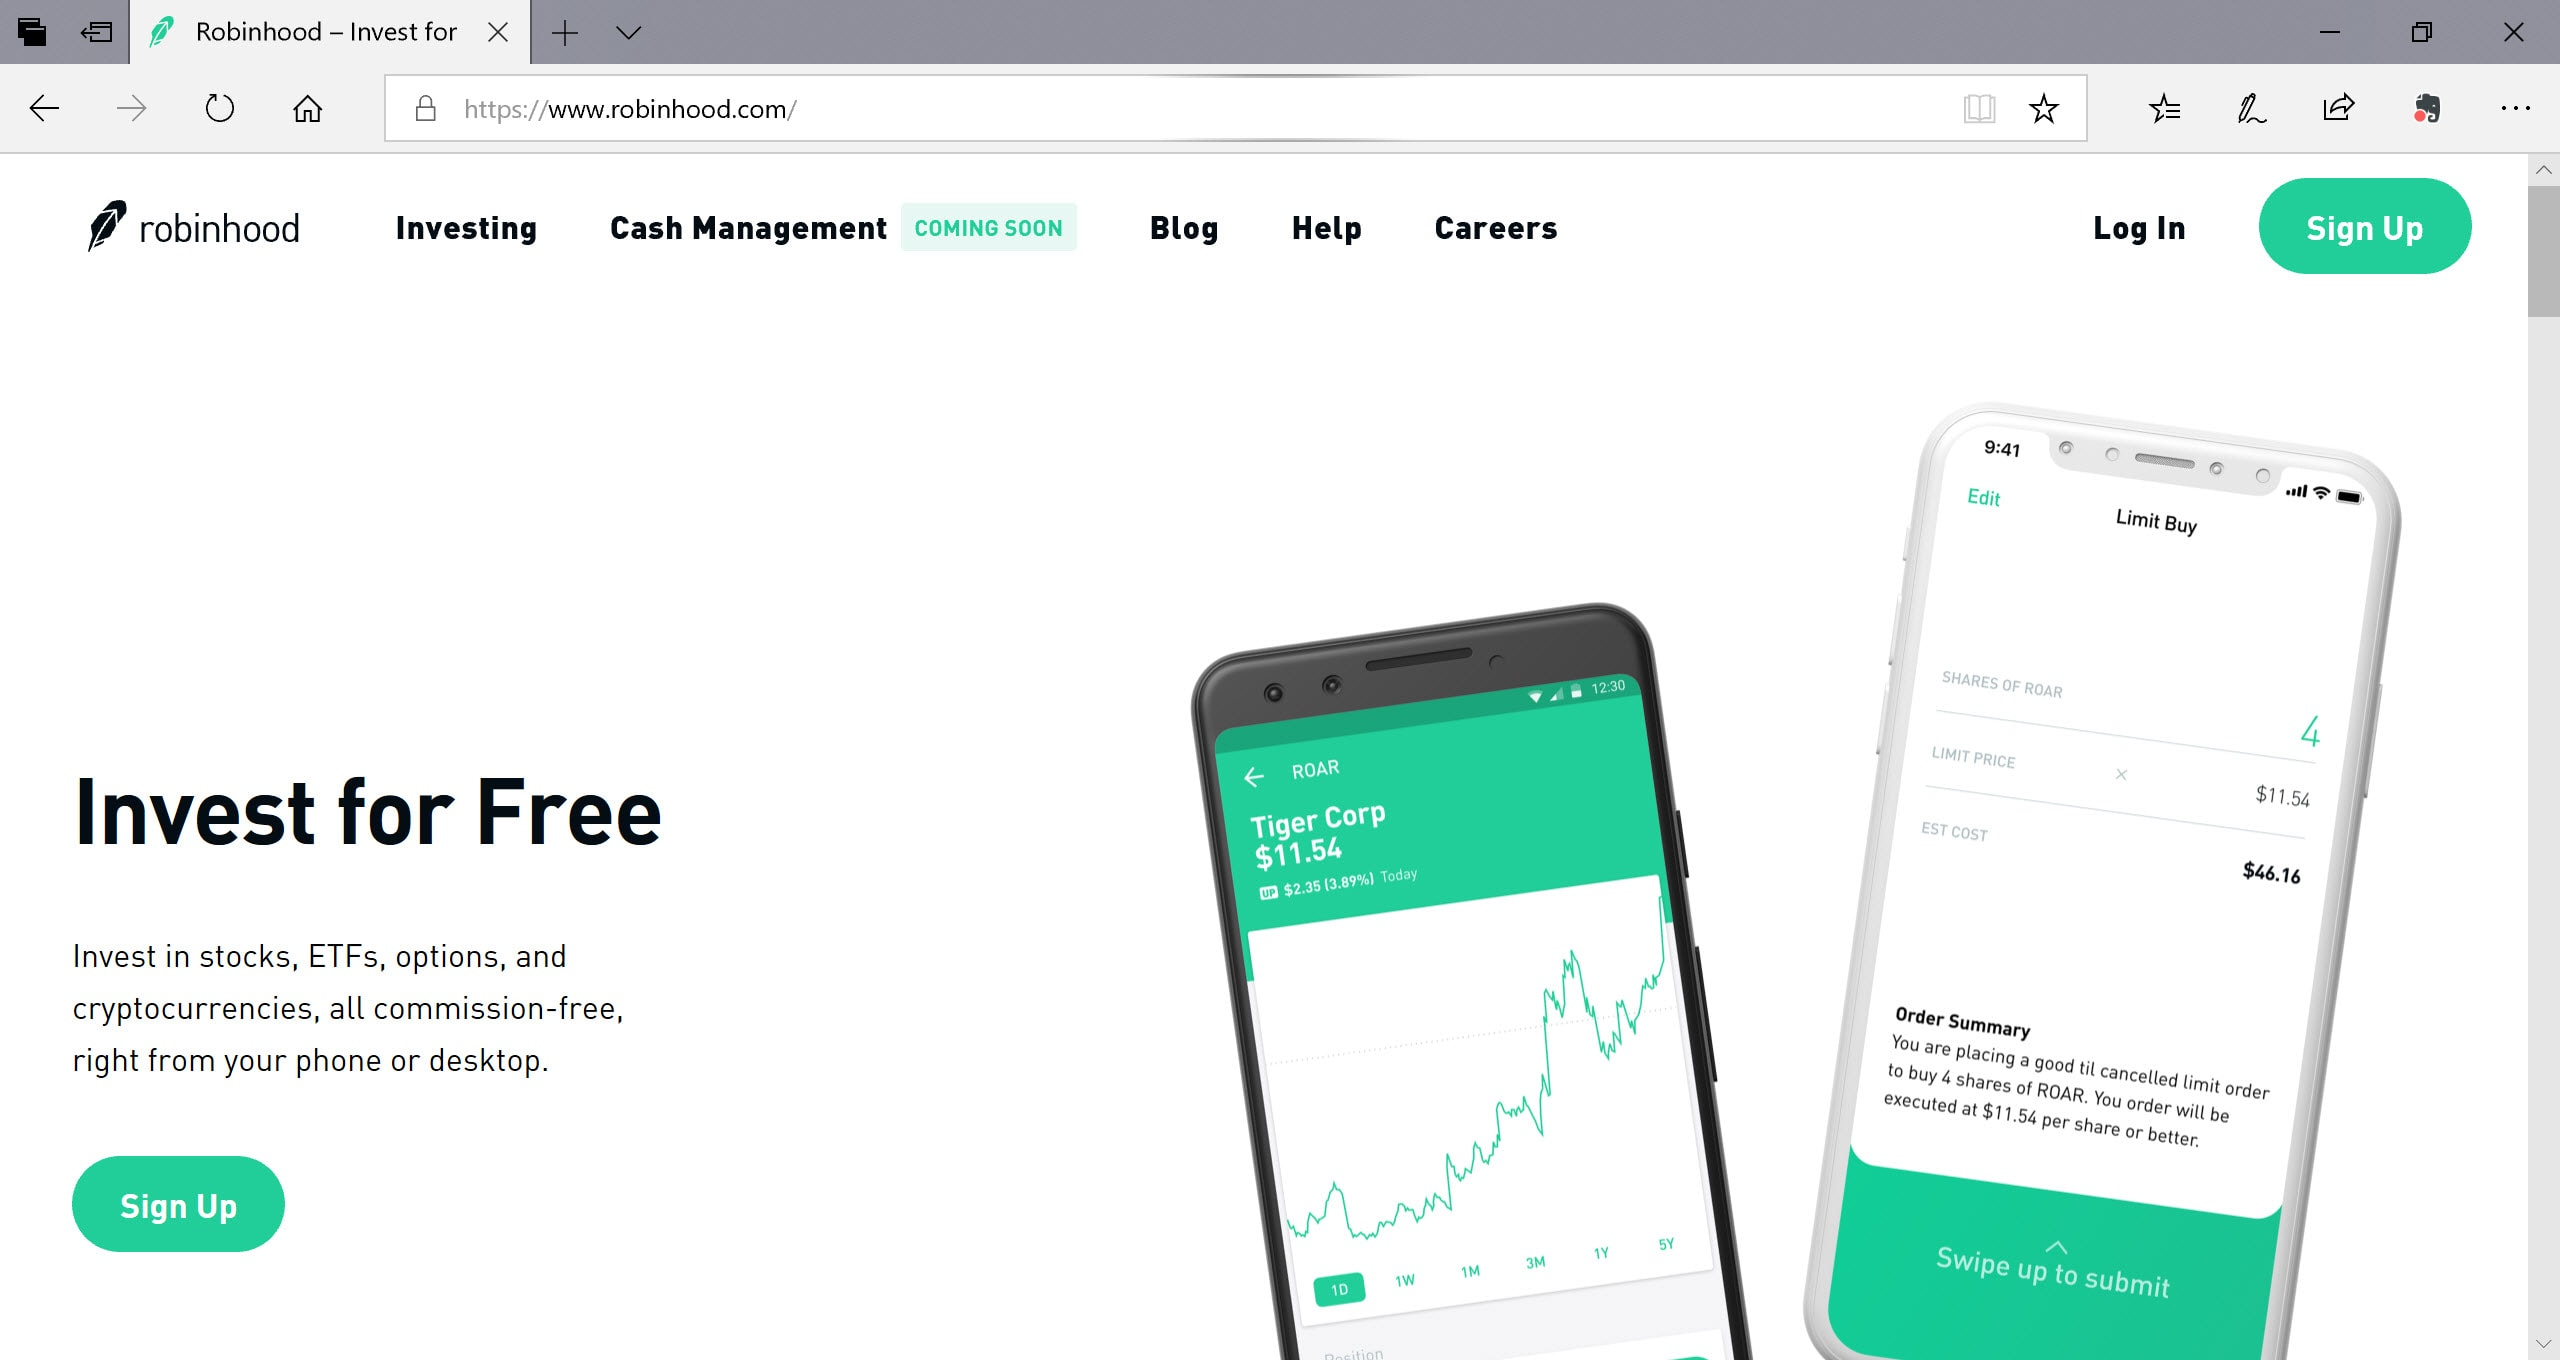 Robinhood Financial Services Company